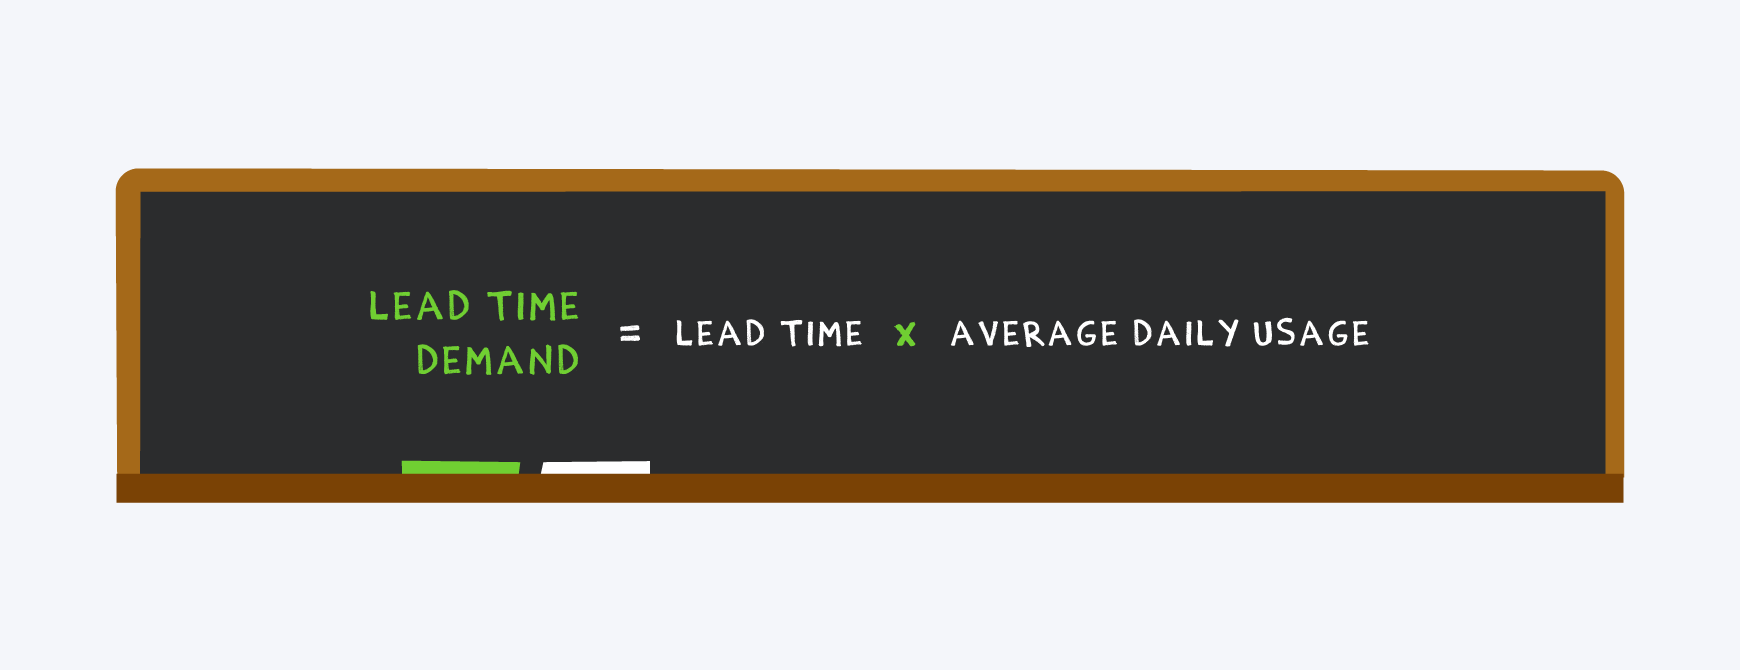 lead-time-demand-formula